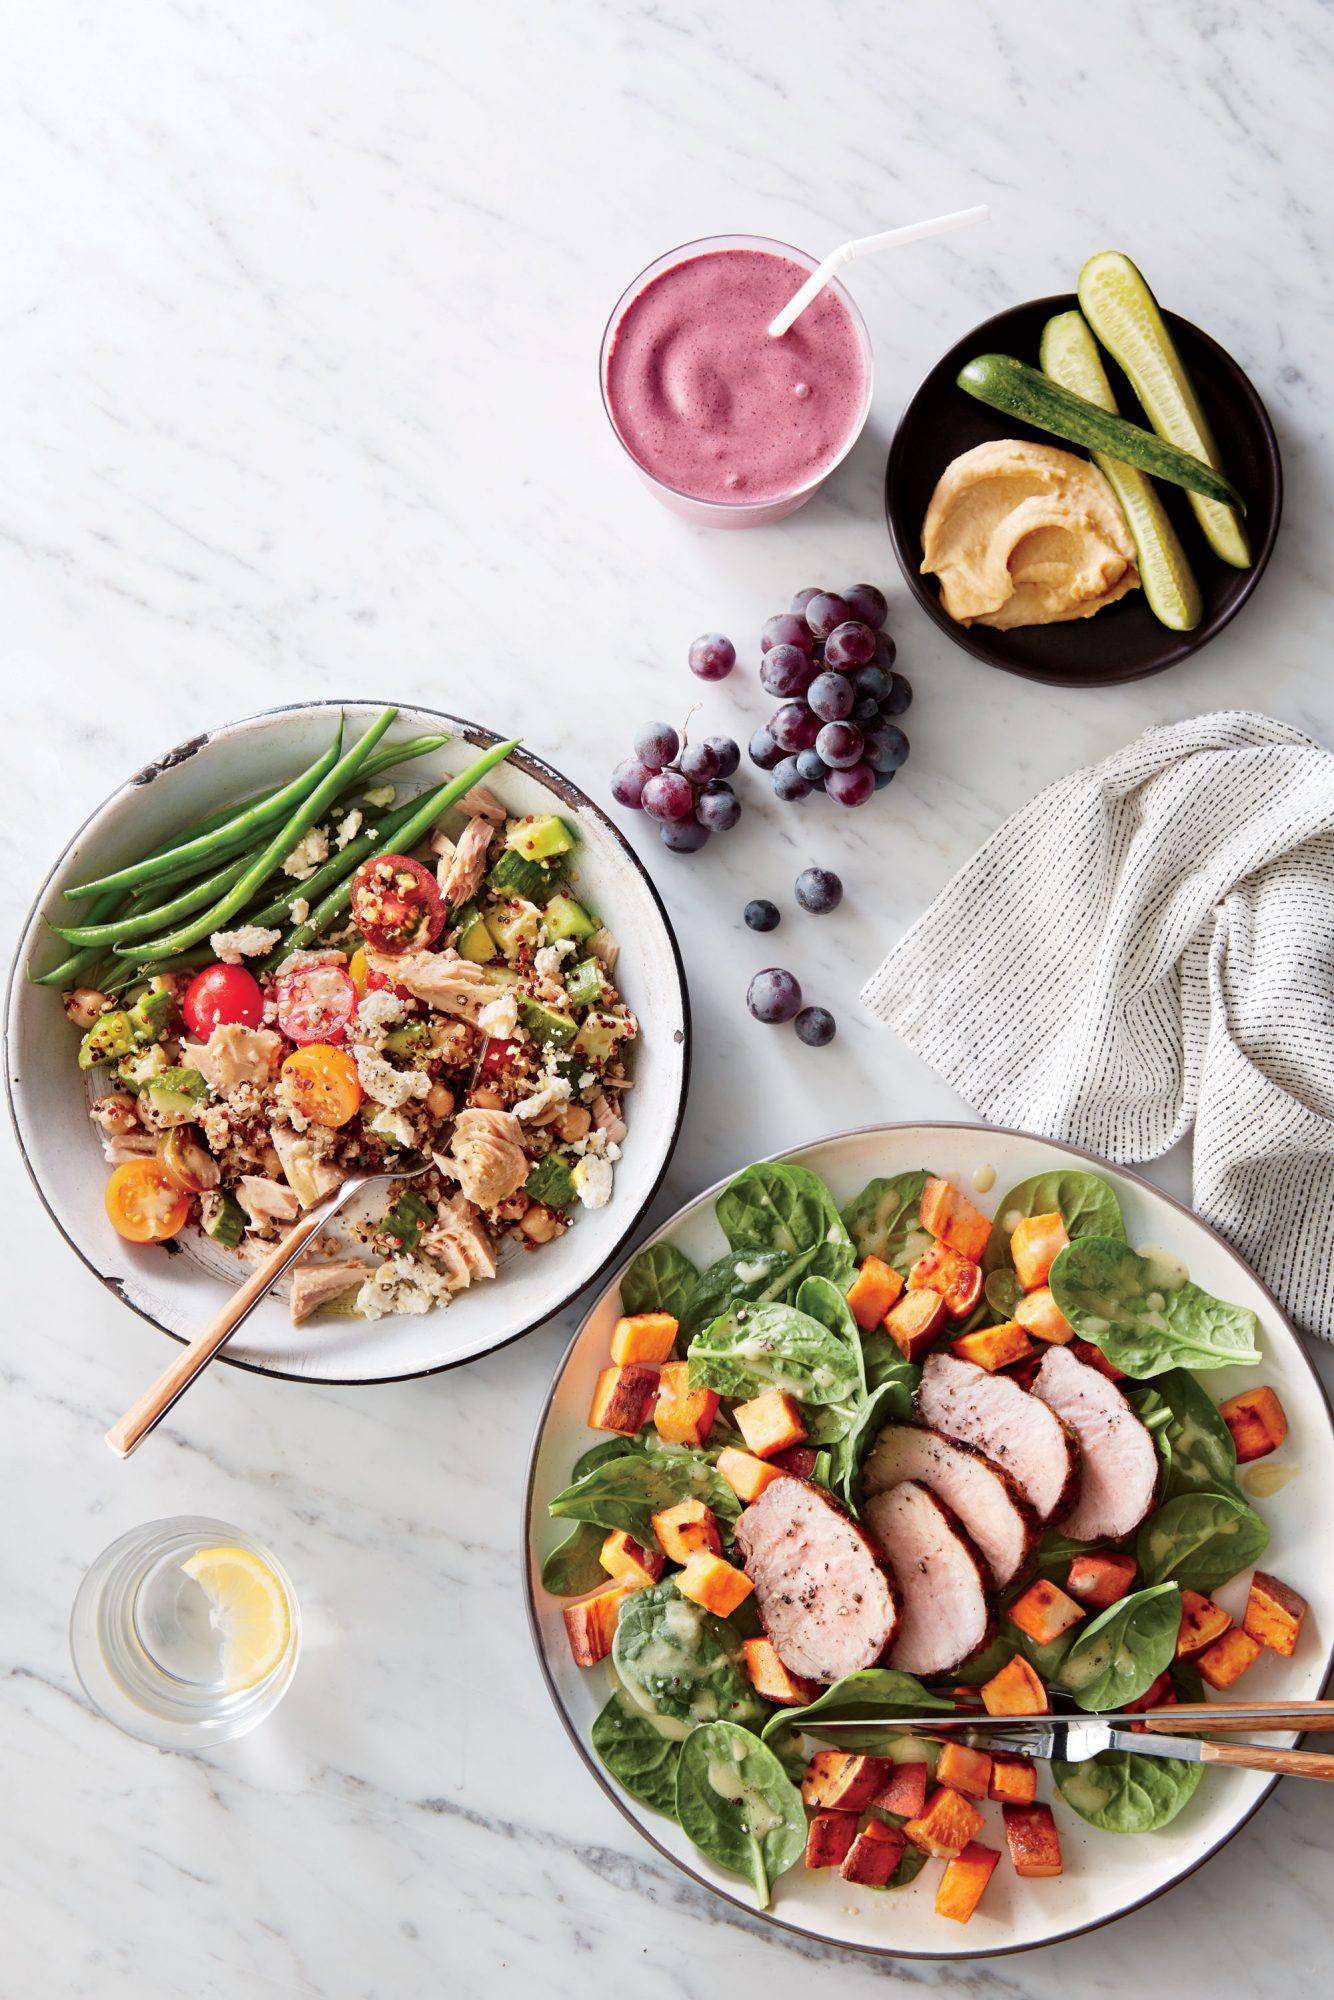 Spinach Salad with Roasted Sweet Potatoes image